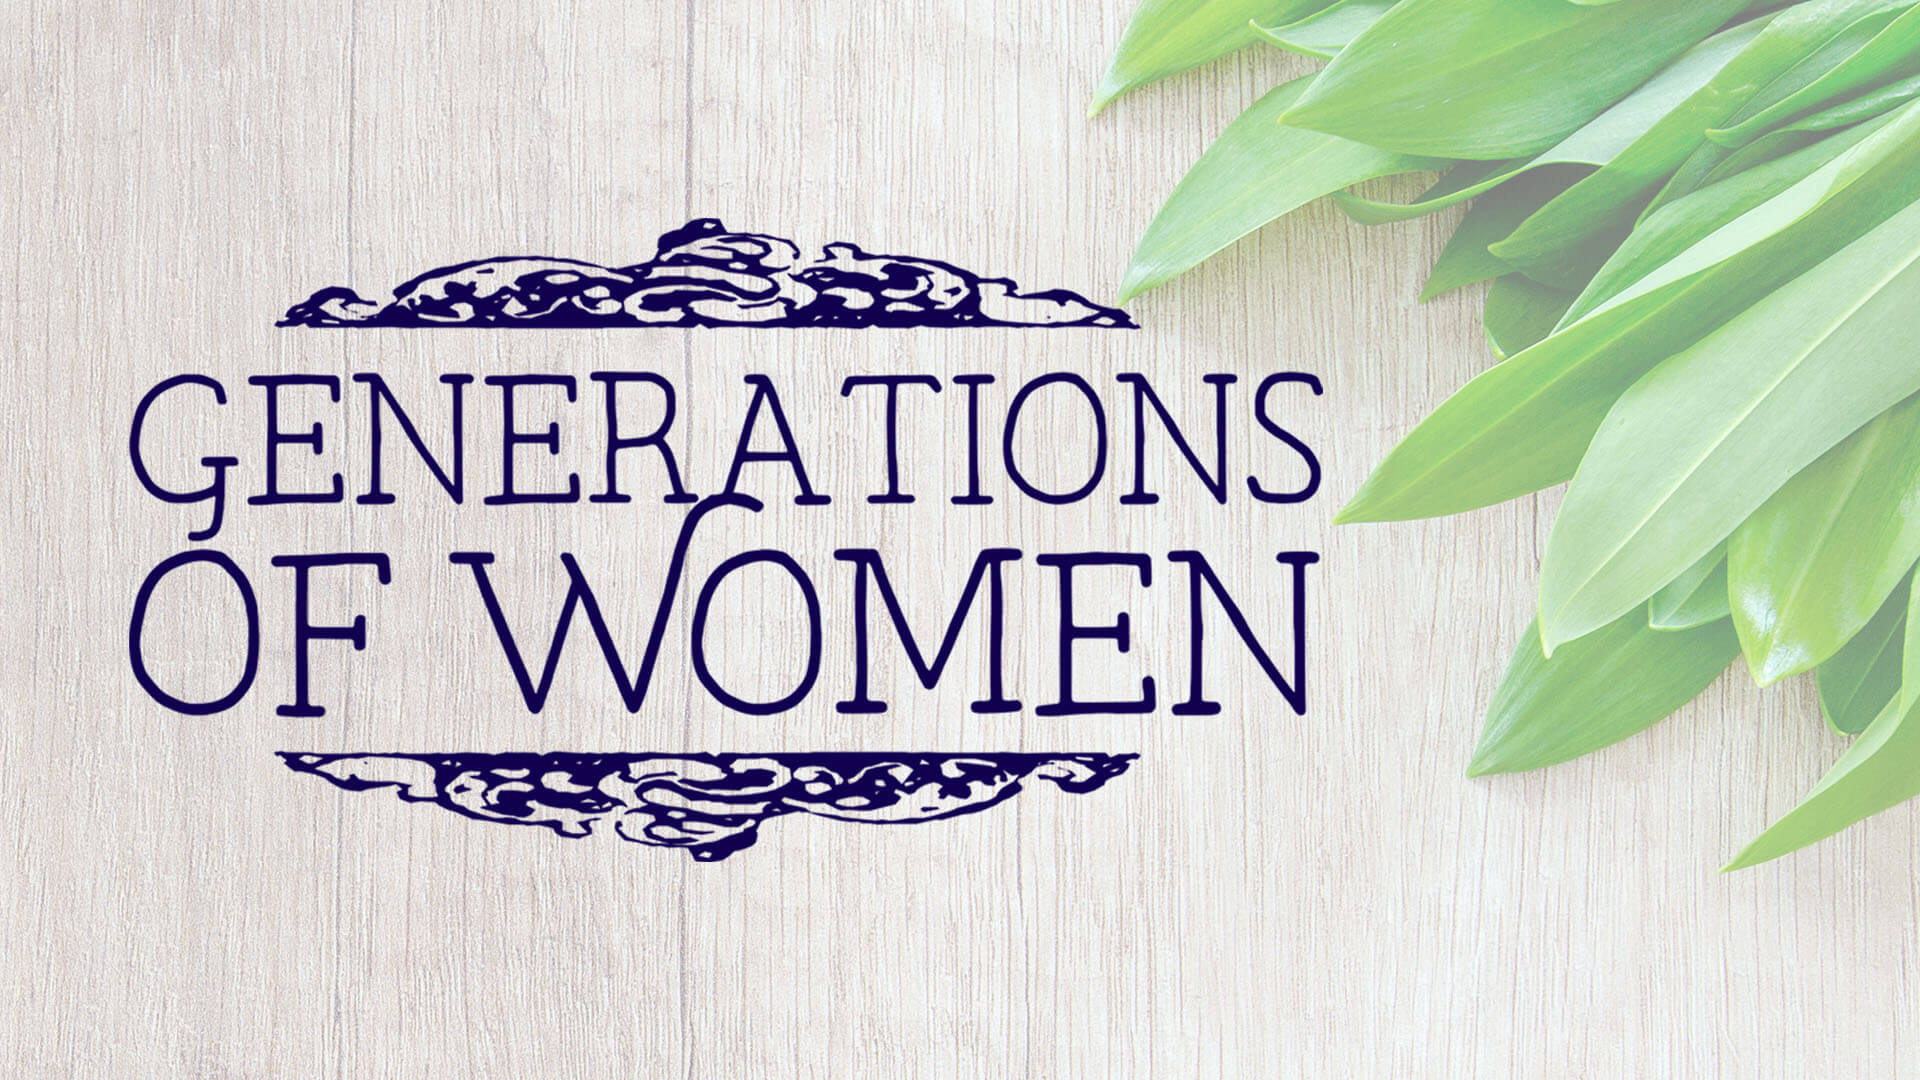 Event - Generations of Women - Wide (16_9) copy.jpg